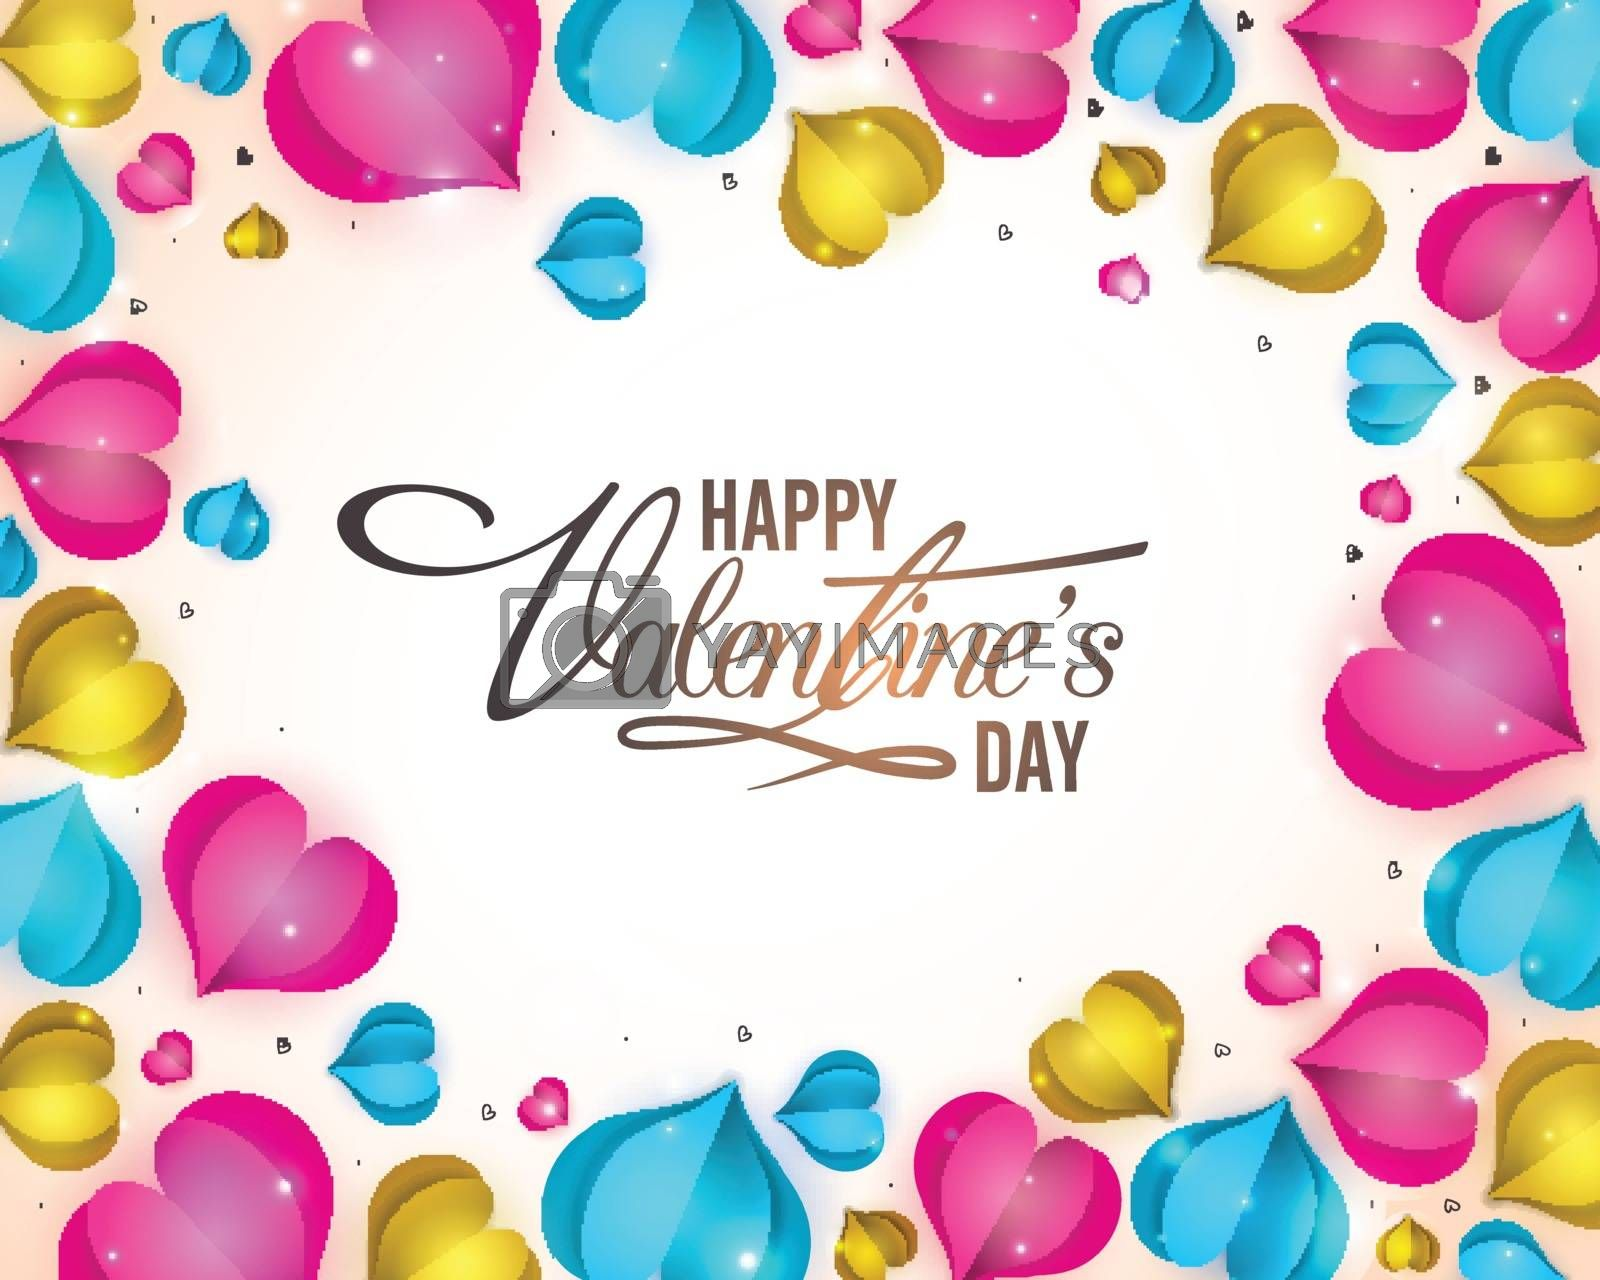 Elegant greeting card design with glossy paper cut out hearts decoration for Happy Valentine's Day celebration.